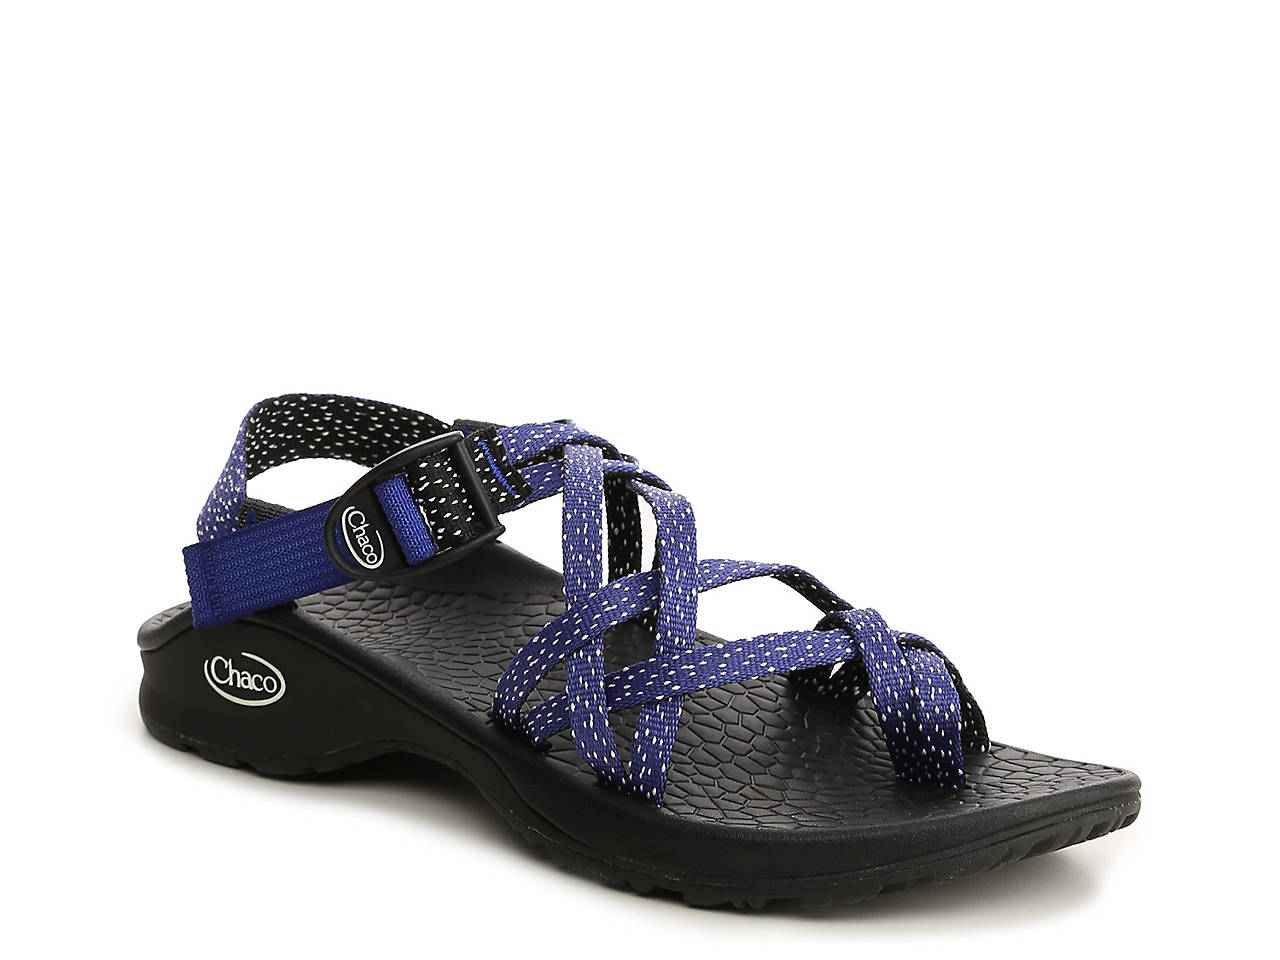 a015a6ed6b39 Chaco Updraft 2 Sport Sandal Women s Shoes